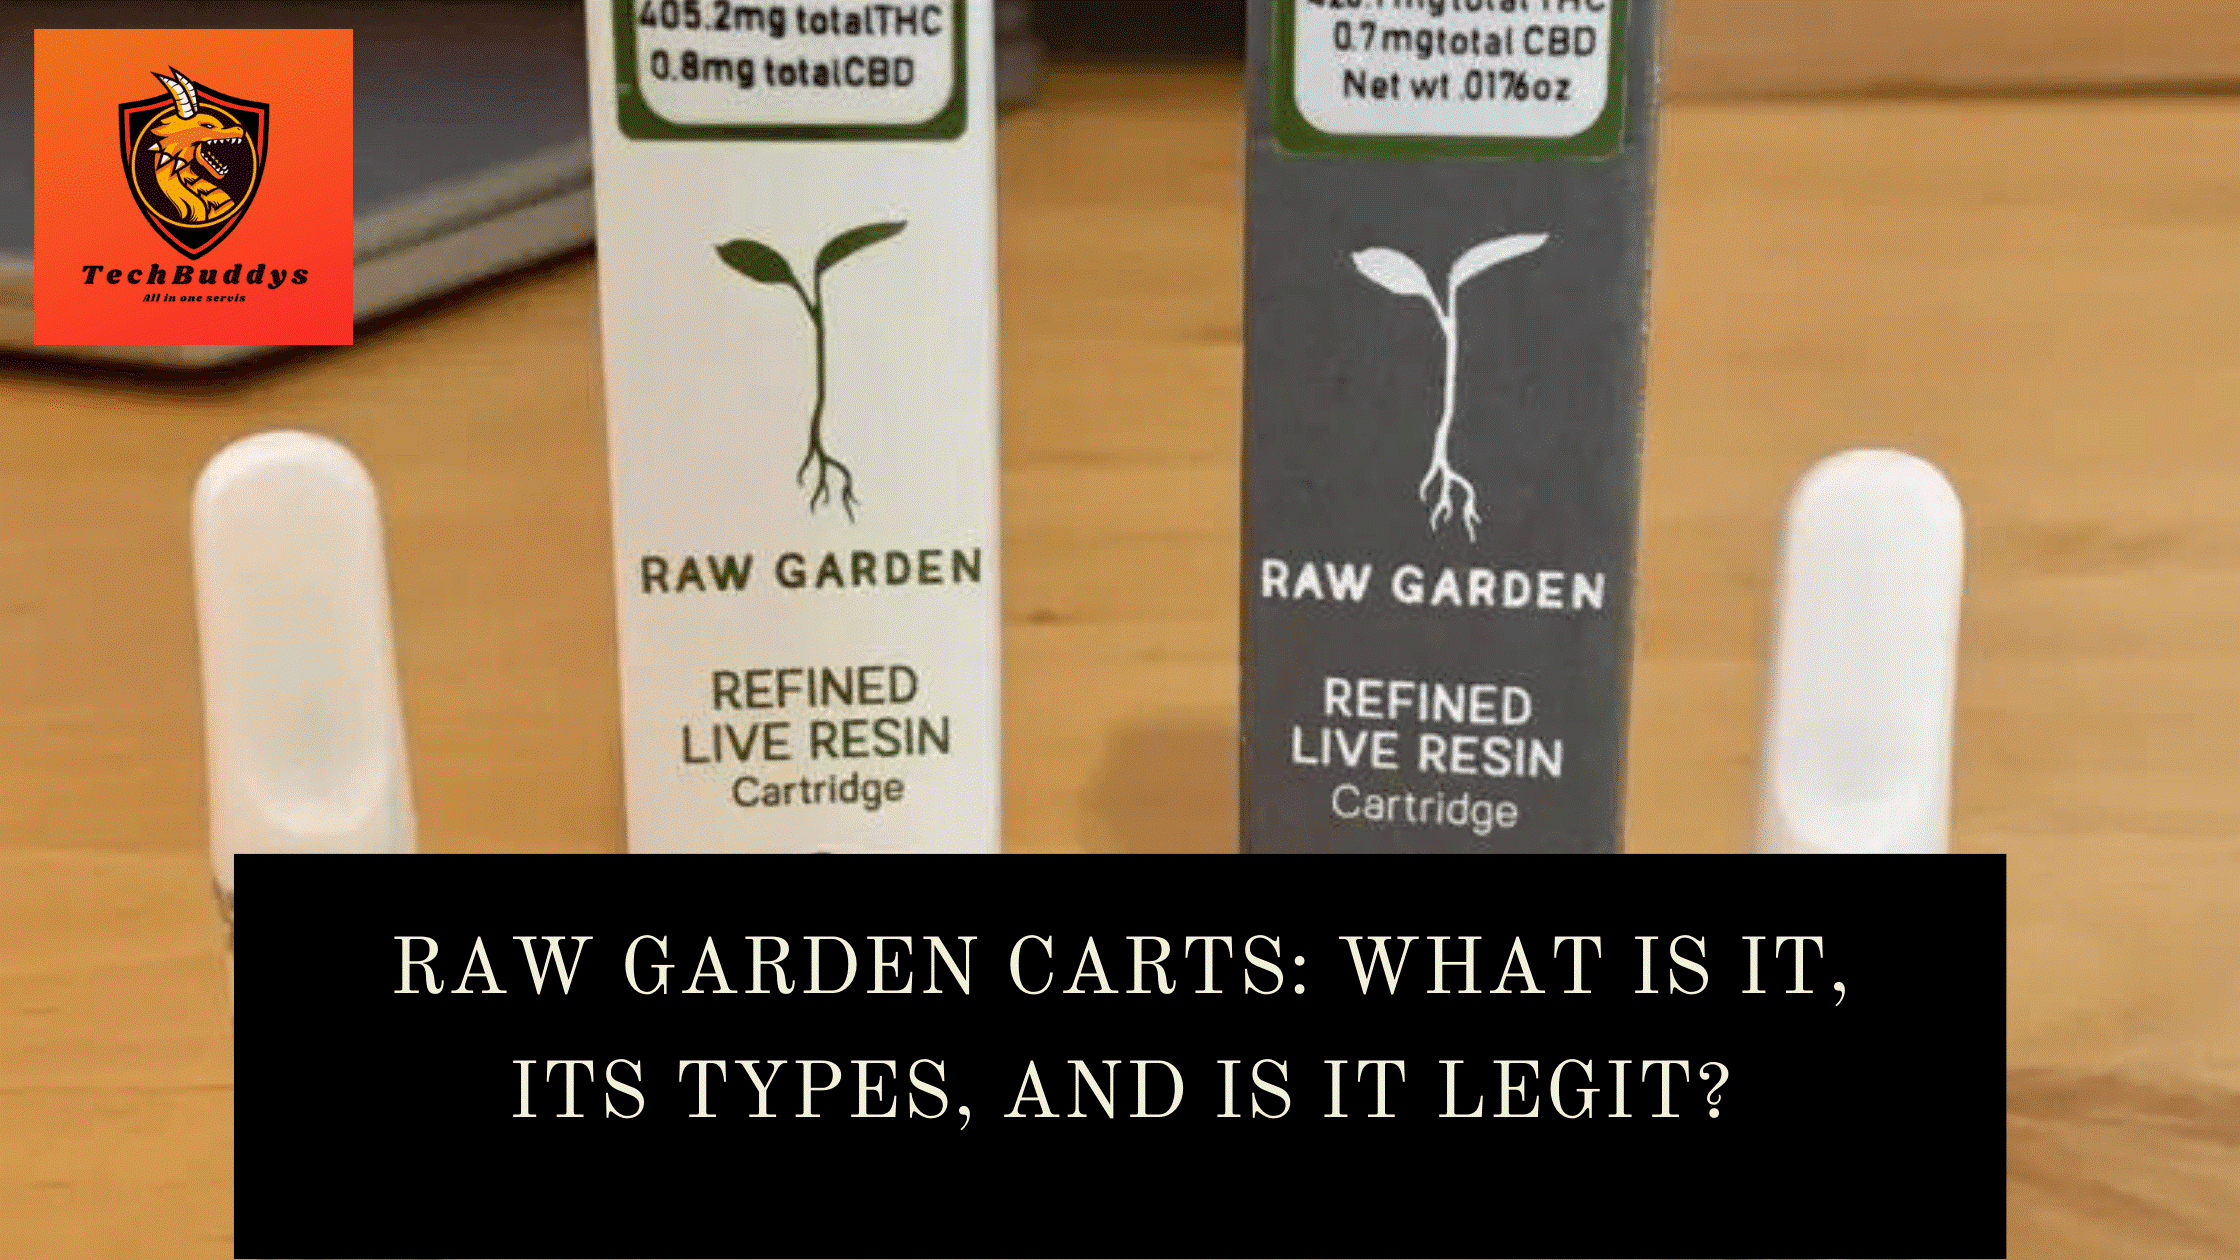 Raw Garden Carts: What is it, Its Types, and Is it legit?